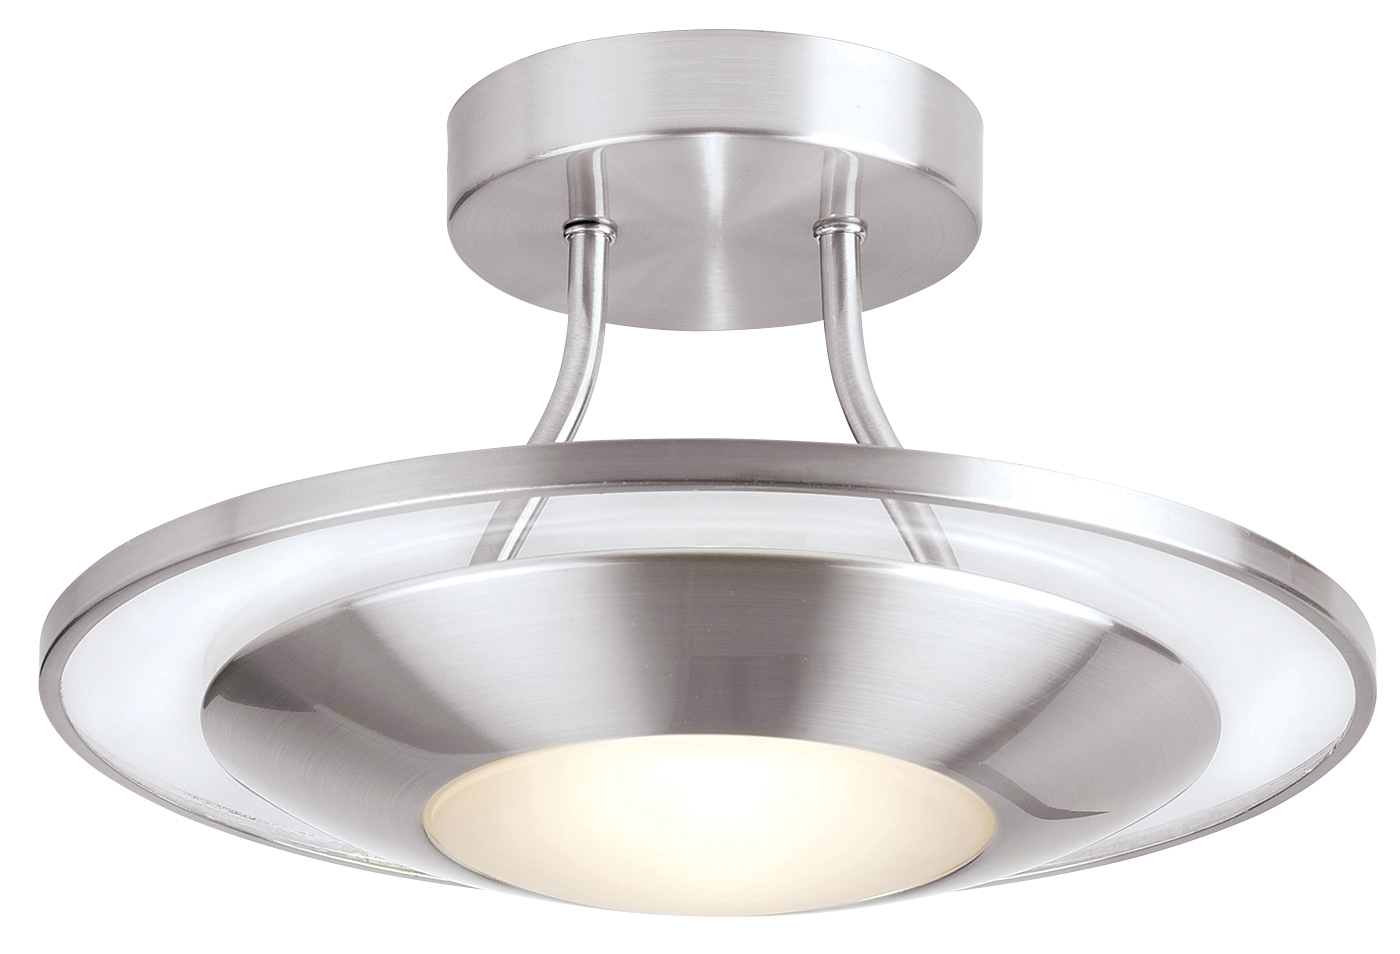 Endon Firenz semi flush ceiling light 120W Satin chrome clear & frosted glass